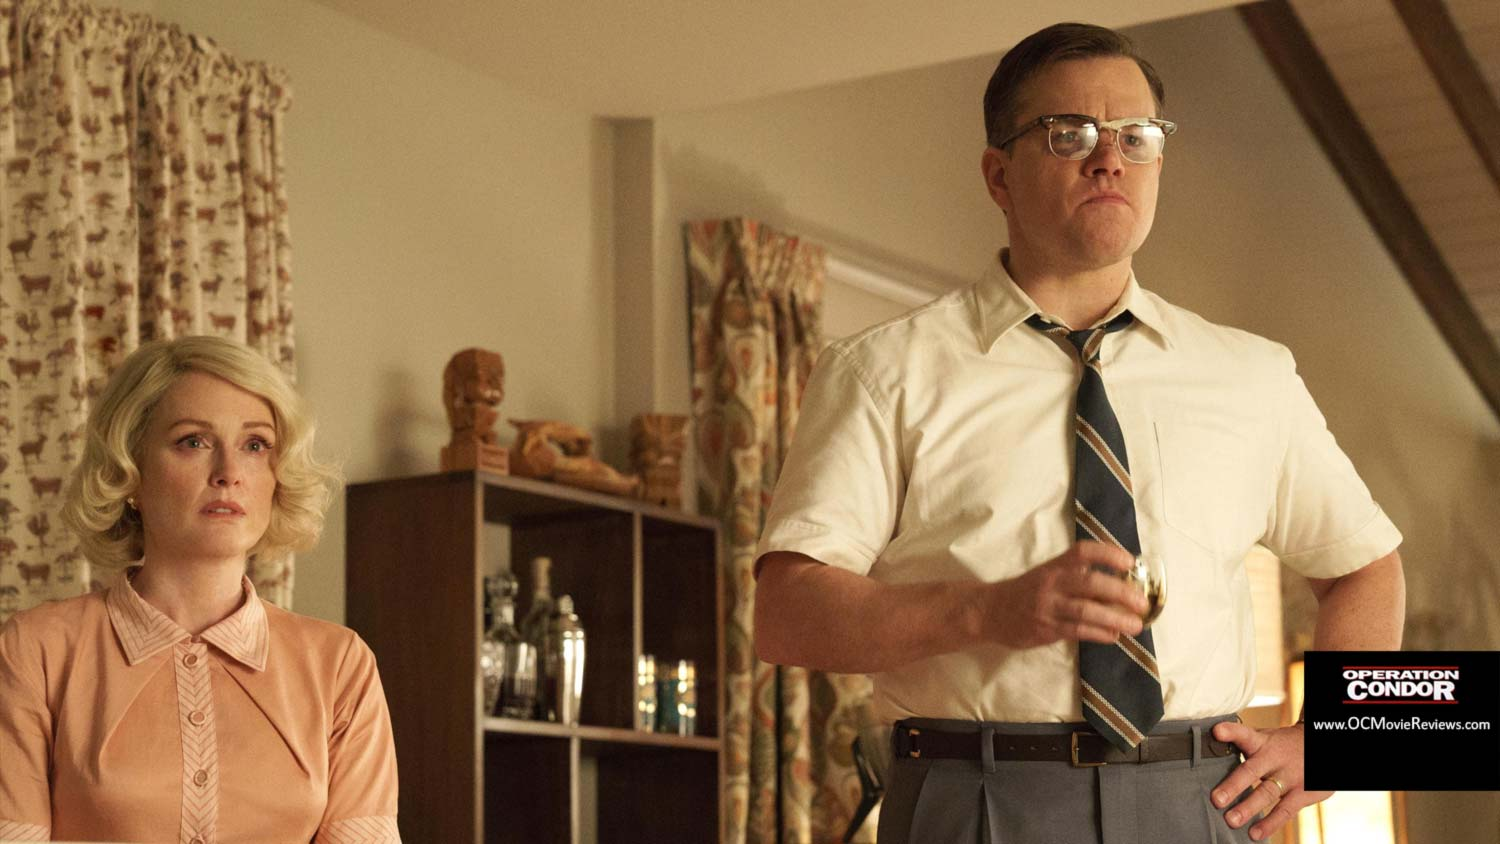 Suburbicon Review – A Cinematic Tragedy - OC Movie Reviews - Movie Reviews, Movie News, Documentary Reviews, Short Films, Short Film Reviews, Trailers, Movie Trailers, Interviews, film reviews, film news, hollywood, indie films, documentaries